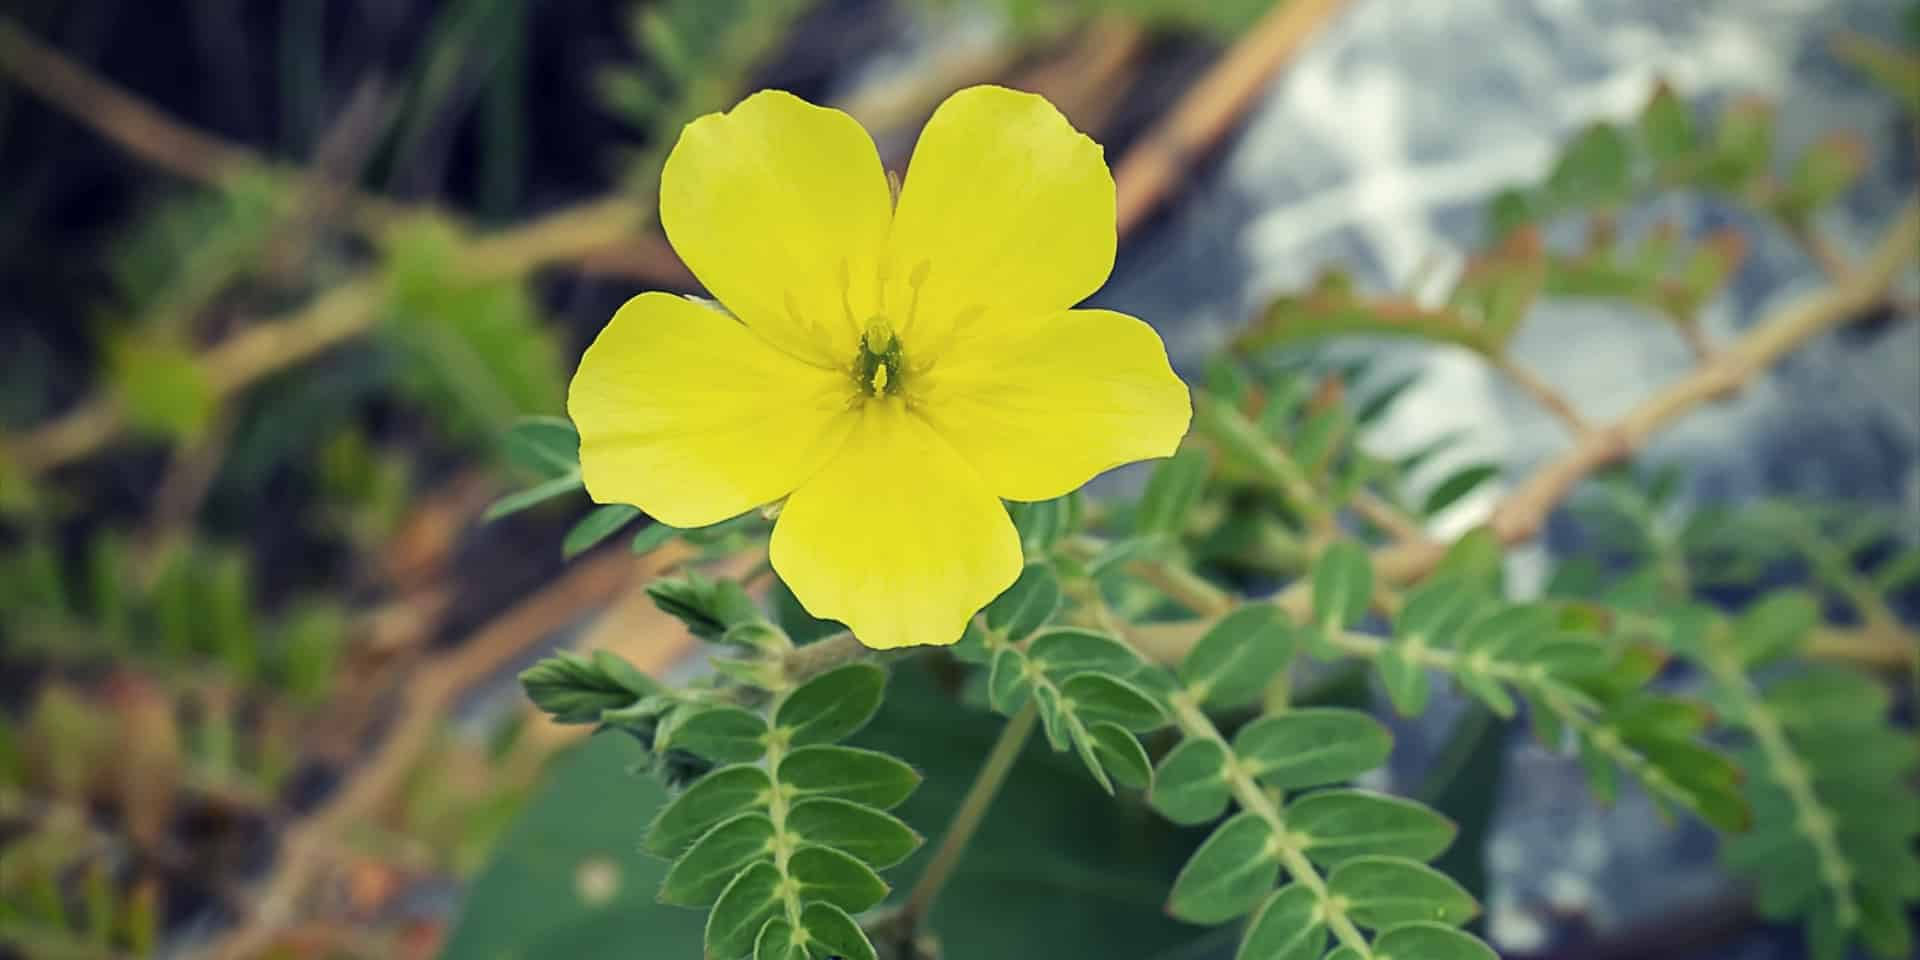 Tribulus Pro the yellow flower of devils thorn (Tribulus Terrestris plant) with leaves